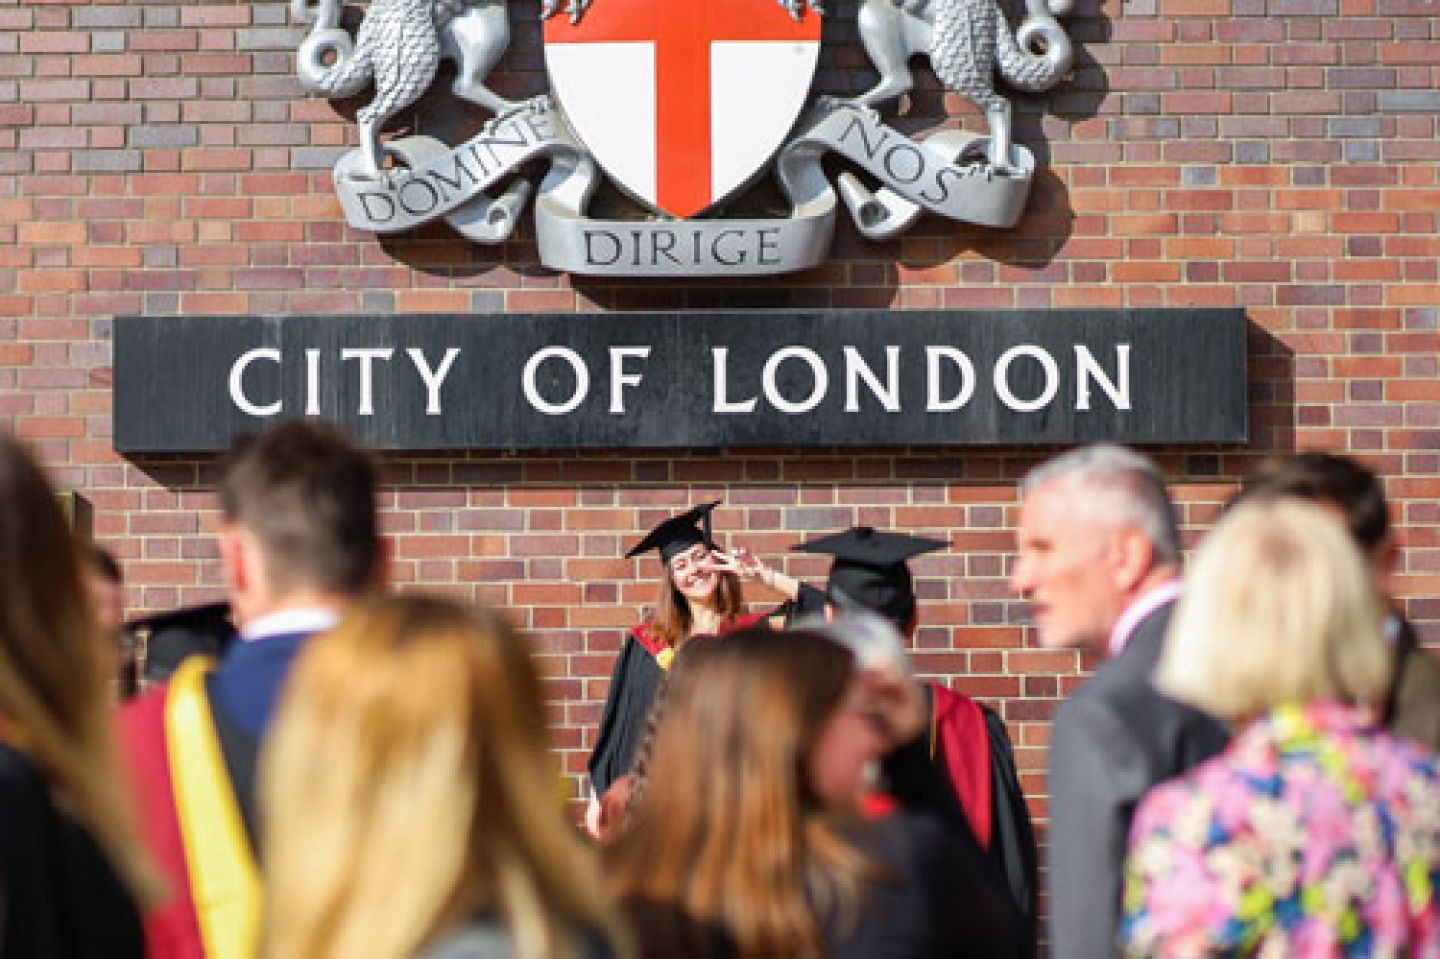 One graduate poses in front of the City of London sign.